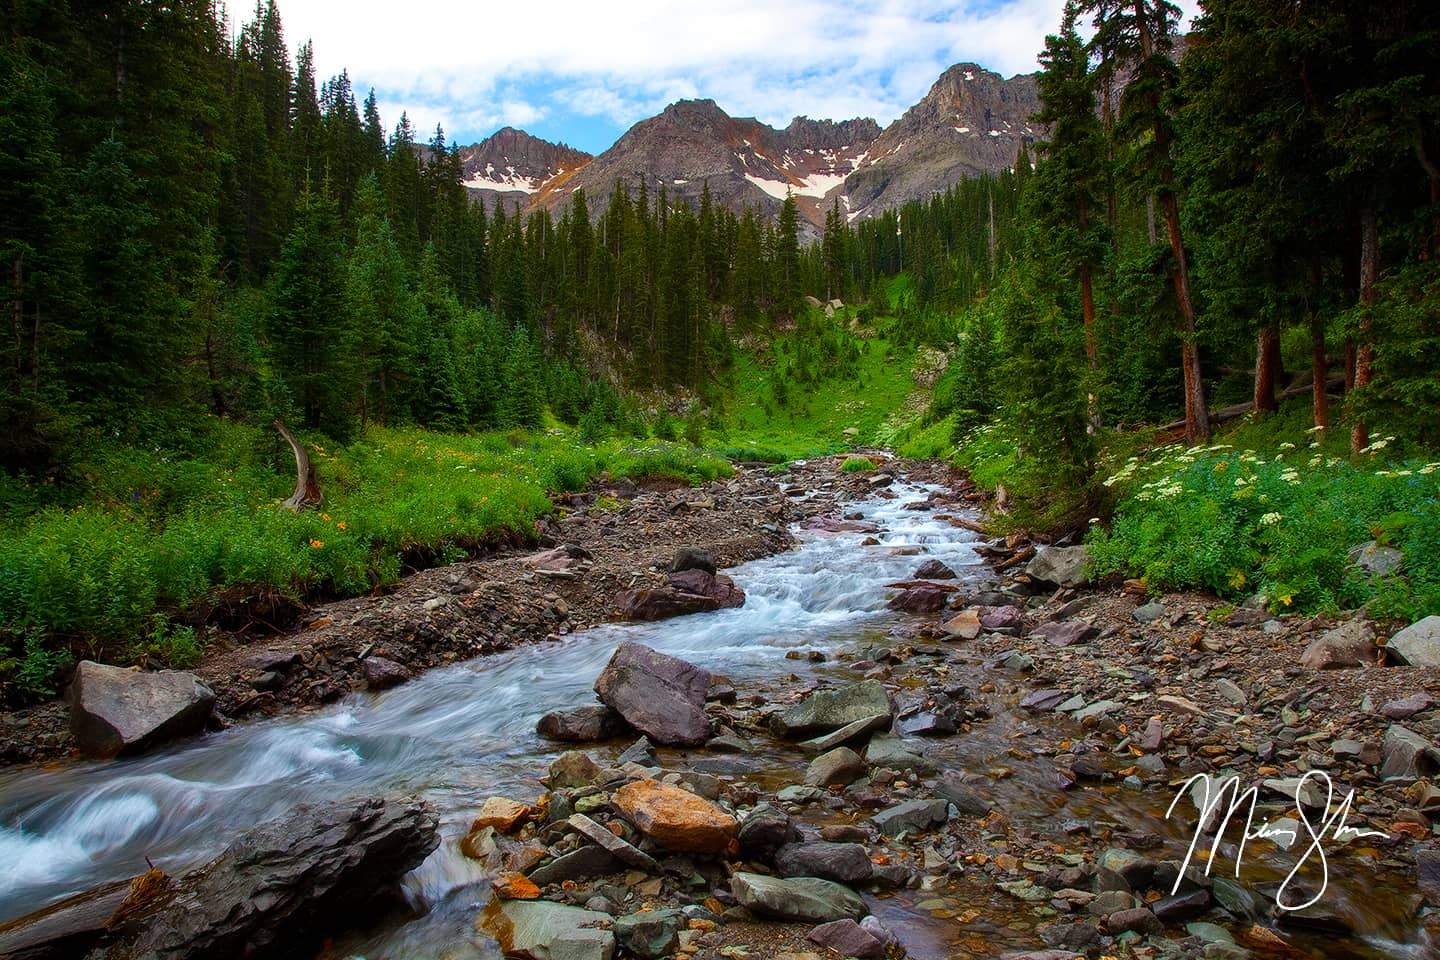 Open edition fine art print of Summer In The San Juans from Mickey Shannon Photography. Location: Sneffels Wilderness, Ridgway, Colorado